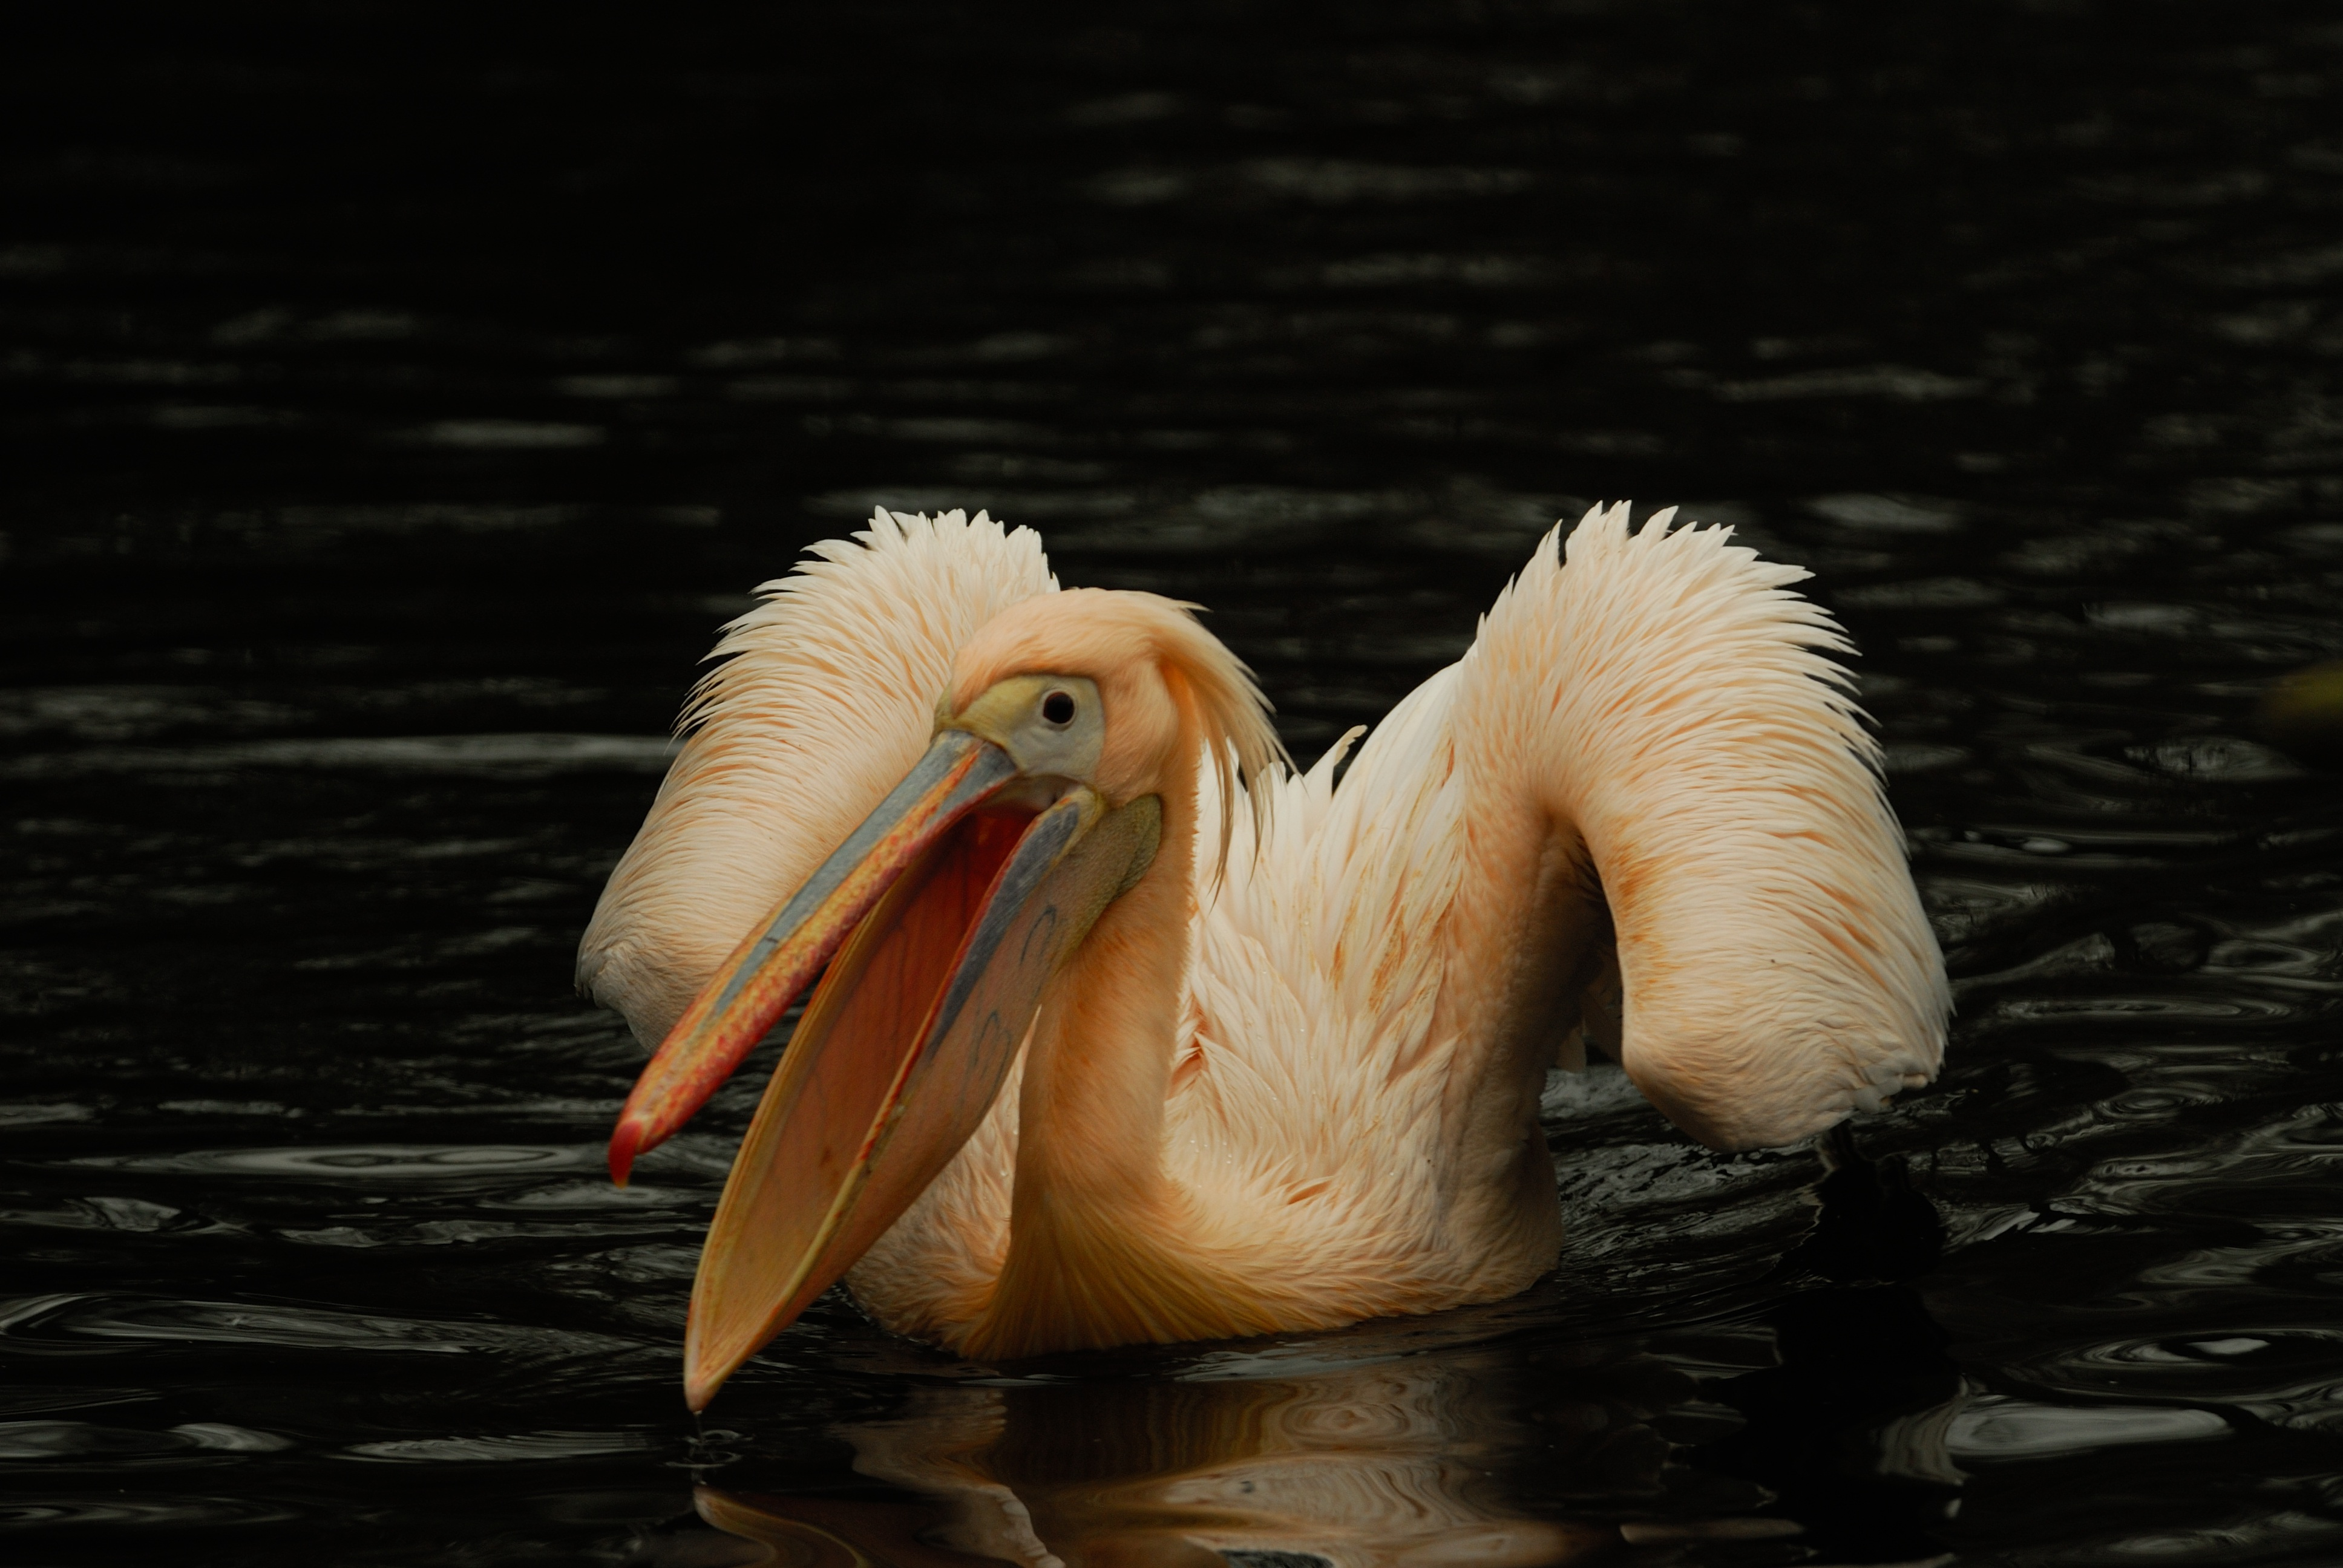 151056 download wallpaper Animals, Pelican, Pink, Bird, Water screensavers and pictures for free